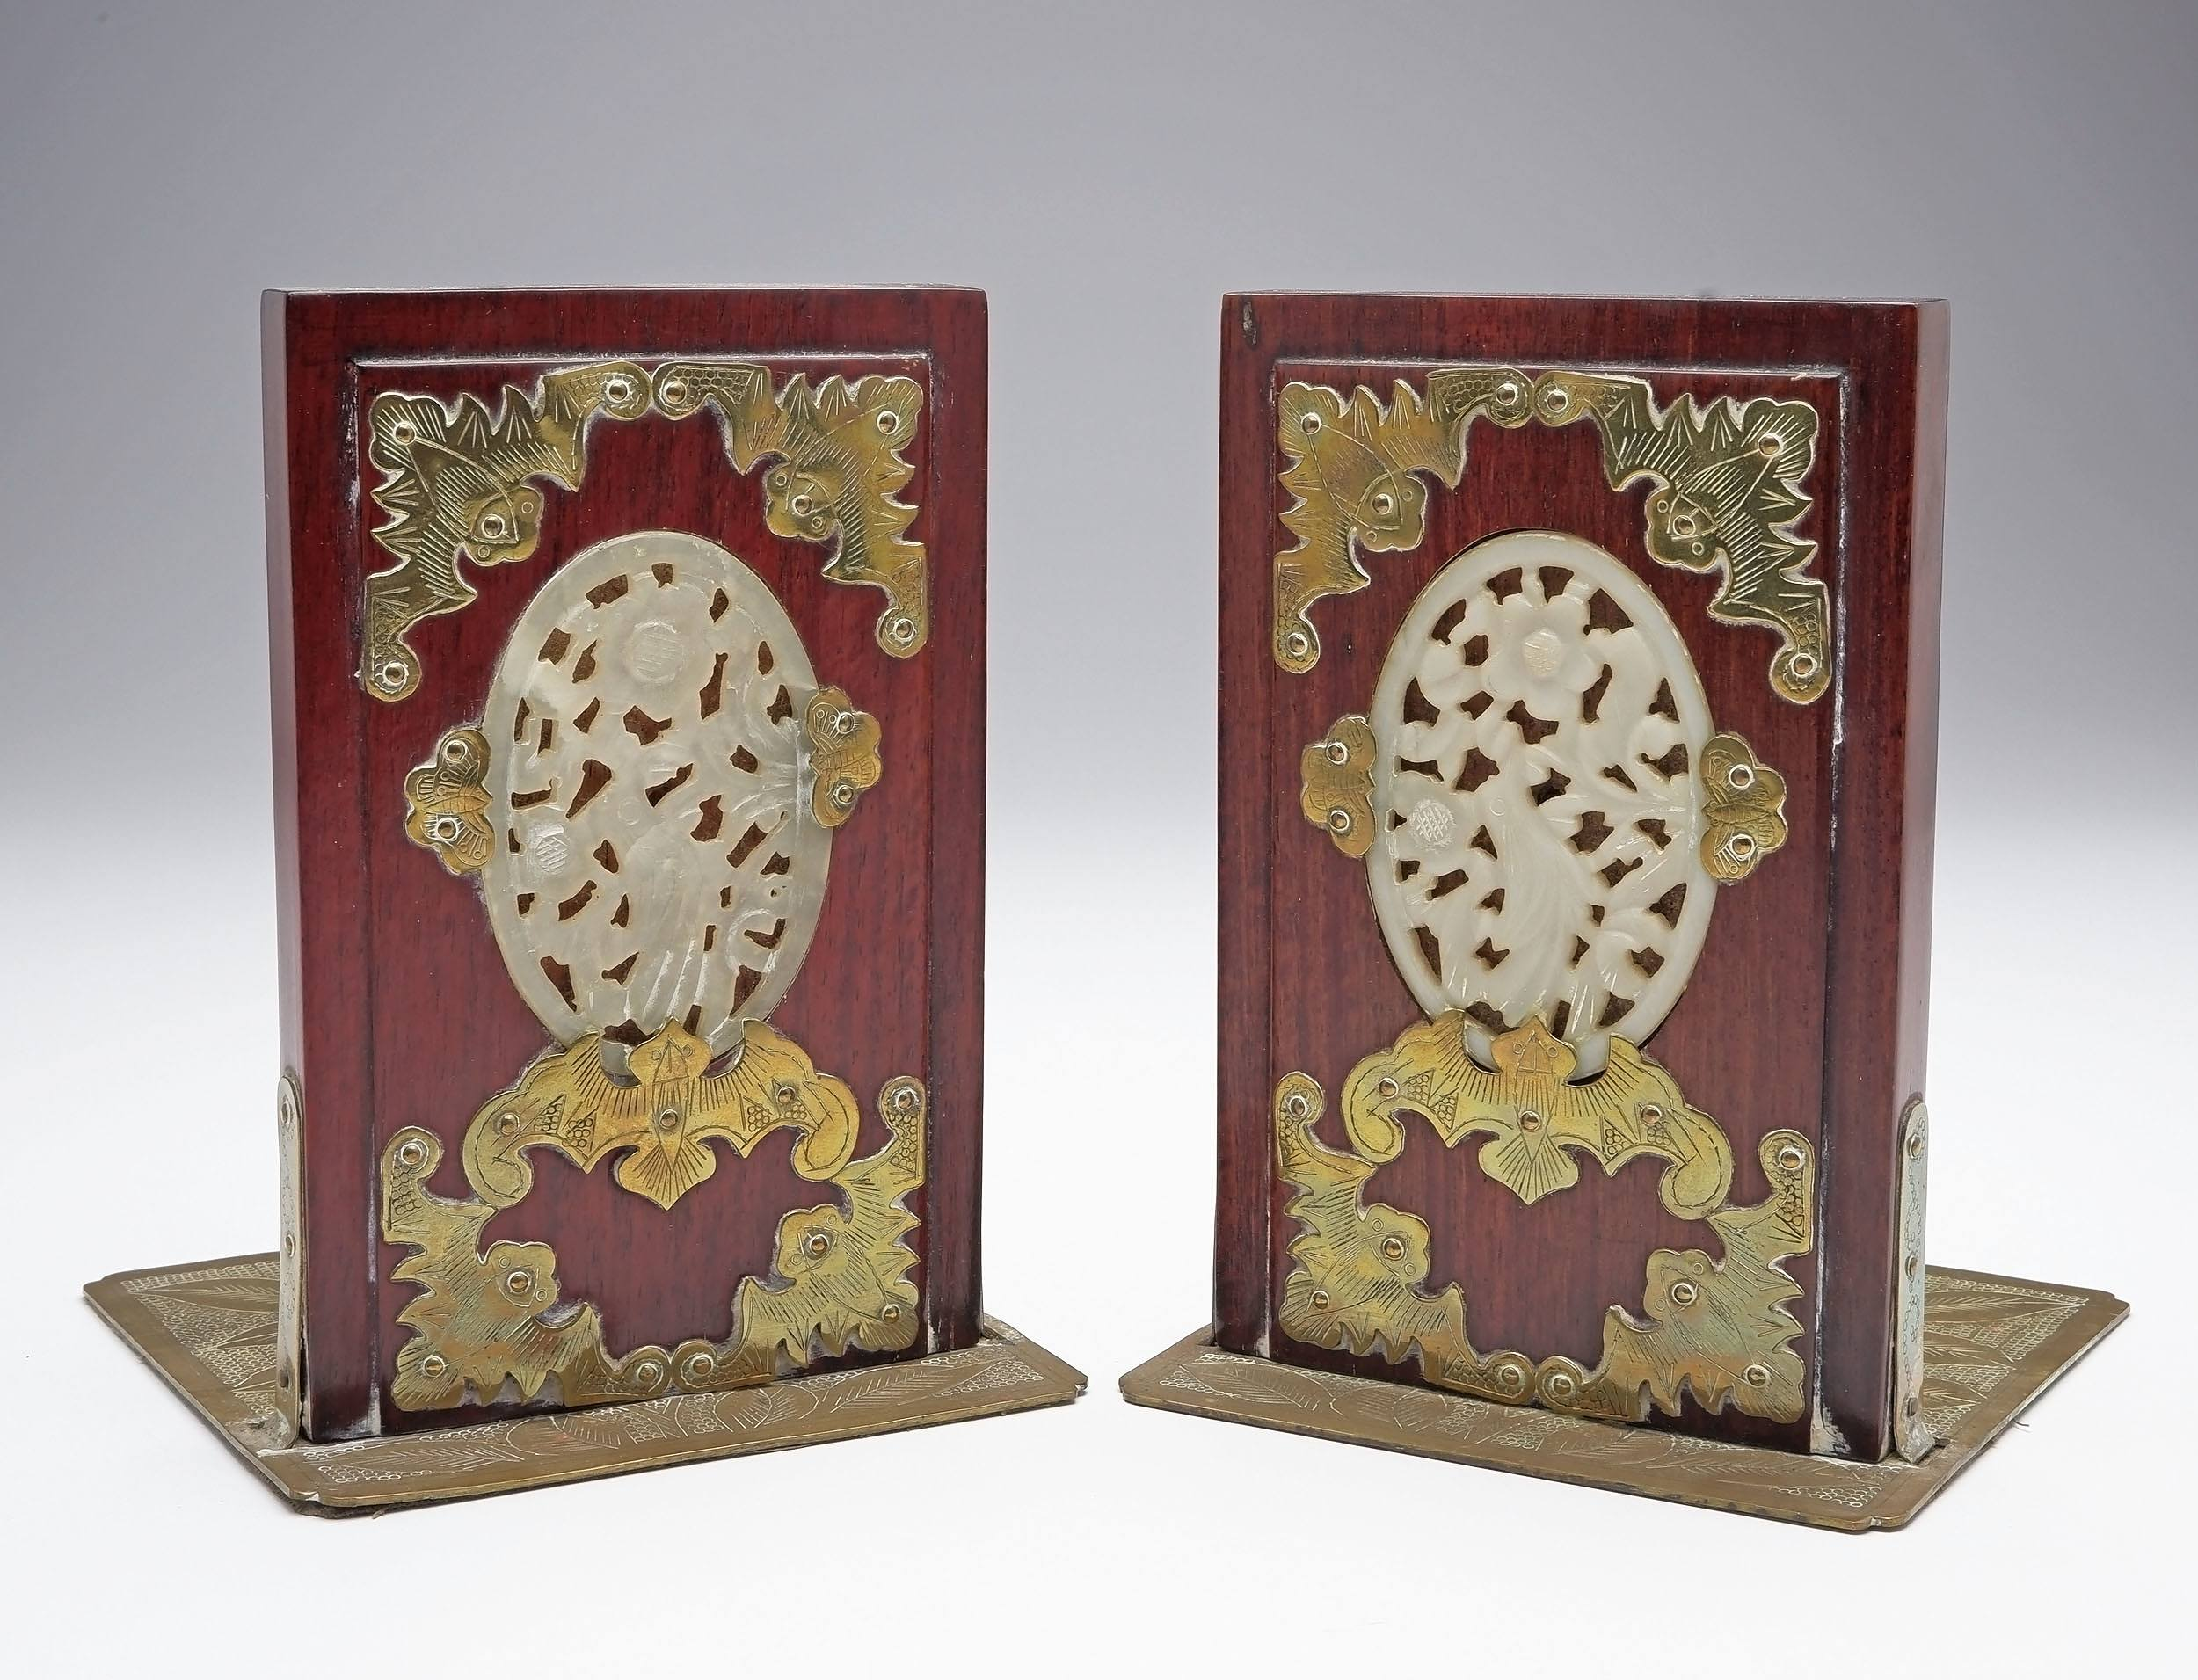 'Pair of Chinese Brass Mounted Bookends with Carved and Pierced Serpentine Panels, Early to Mid 20th Century'